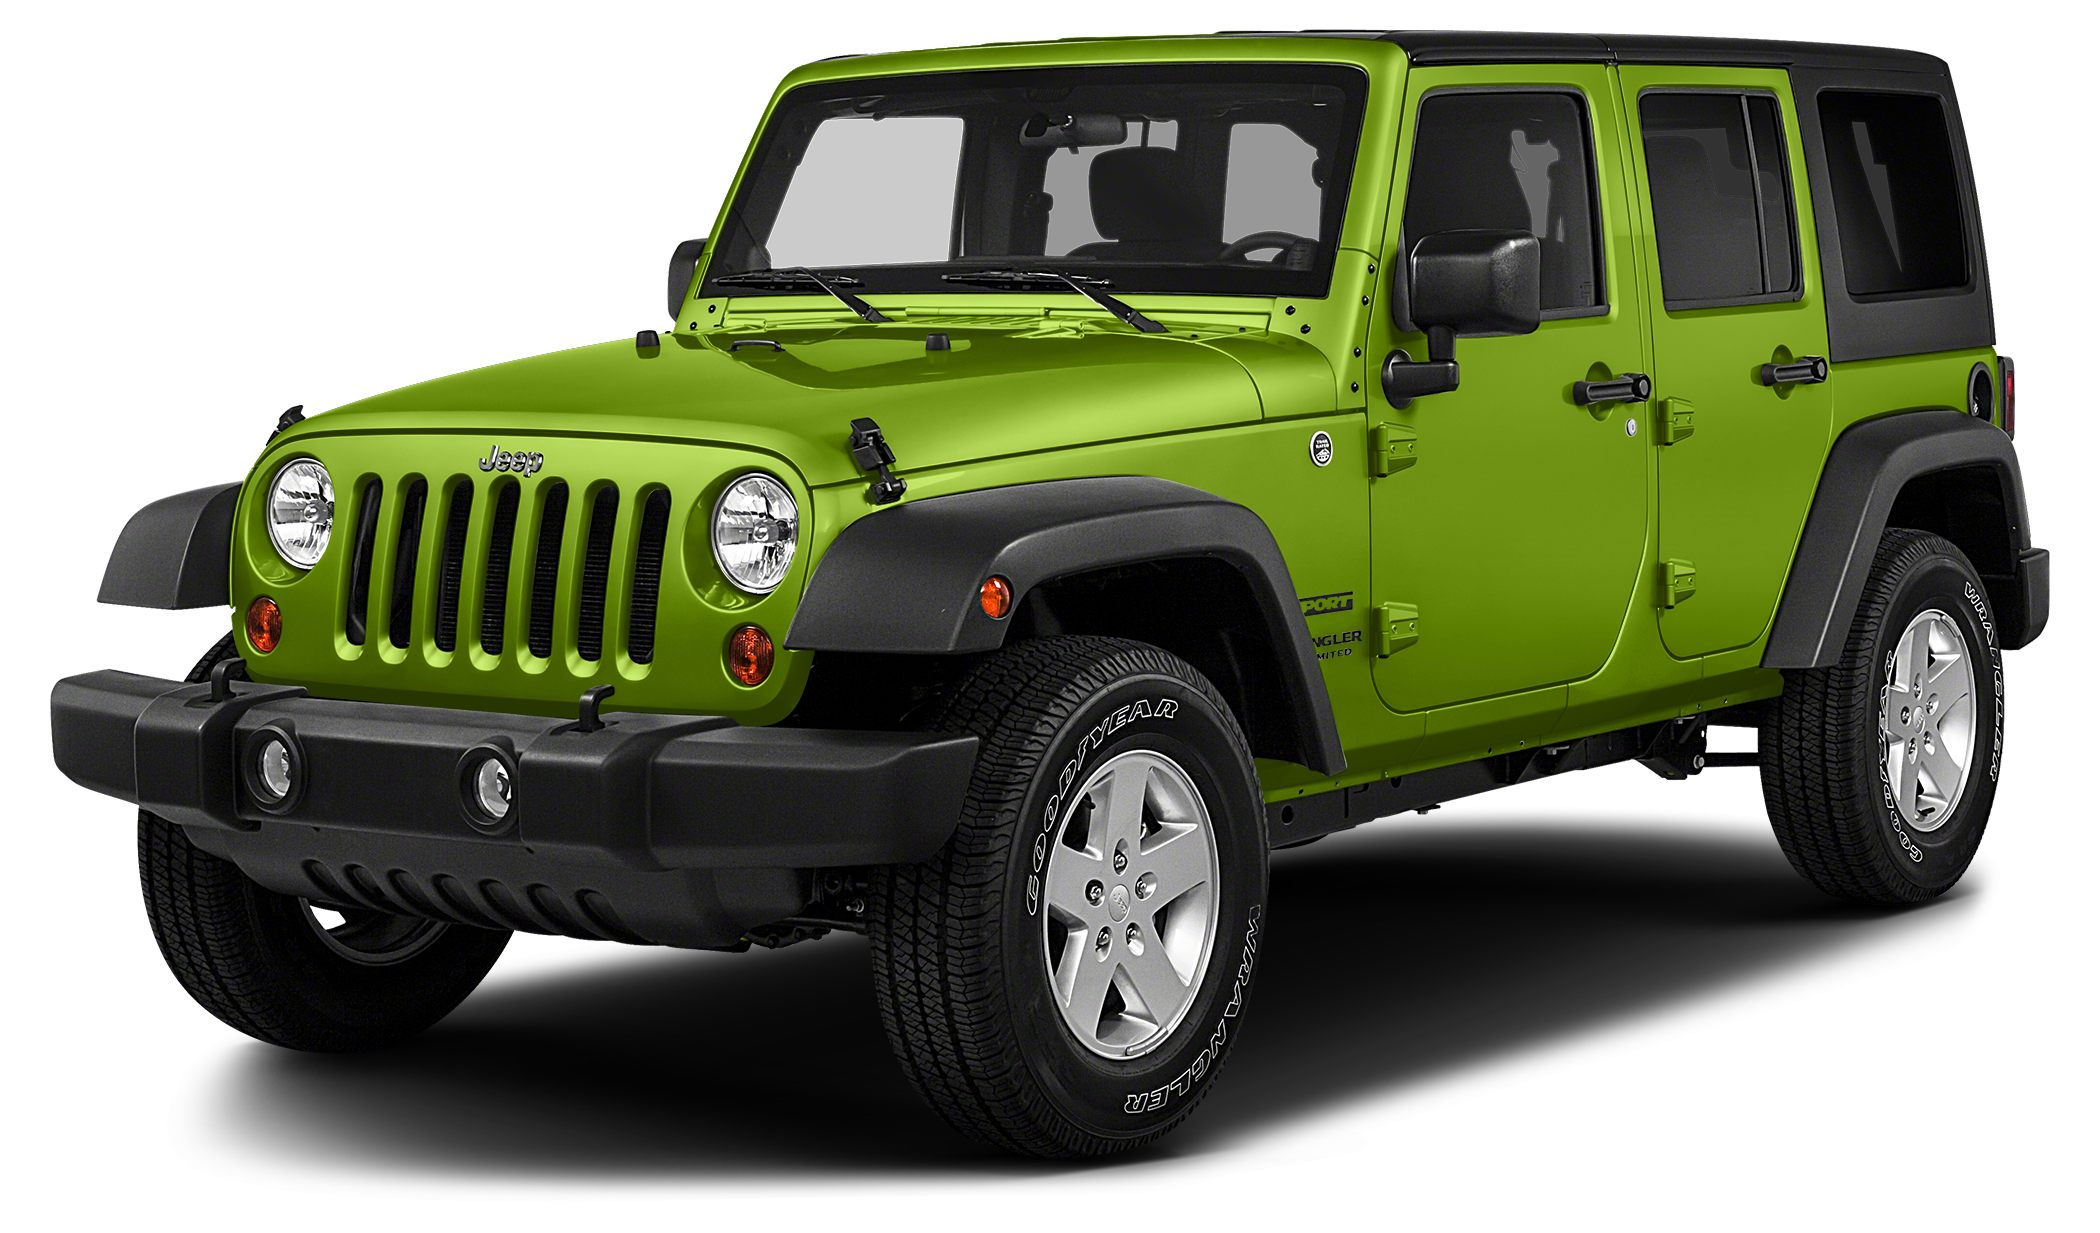 2014 Jeep Wrangler Unlimited Sport Lake Keowee Chrysler Dodge Jeep has a wide selection of excepti